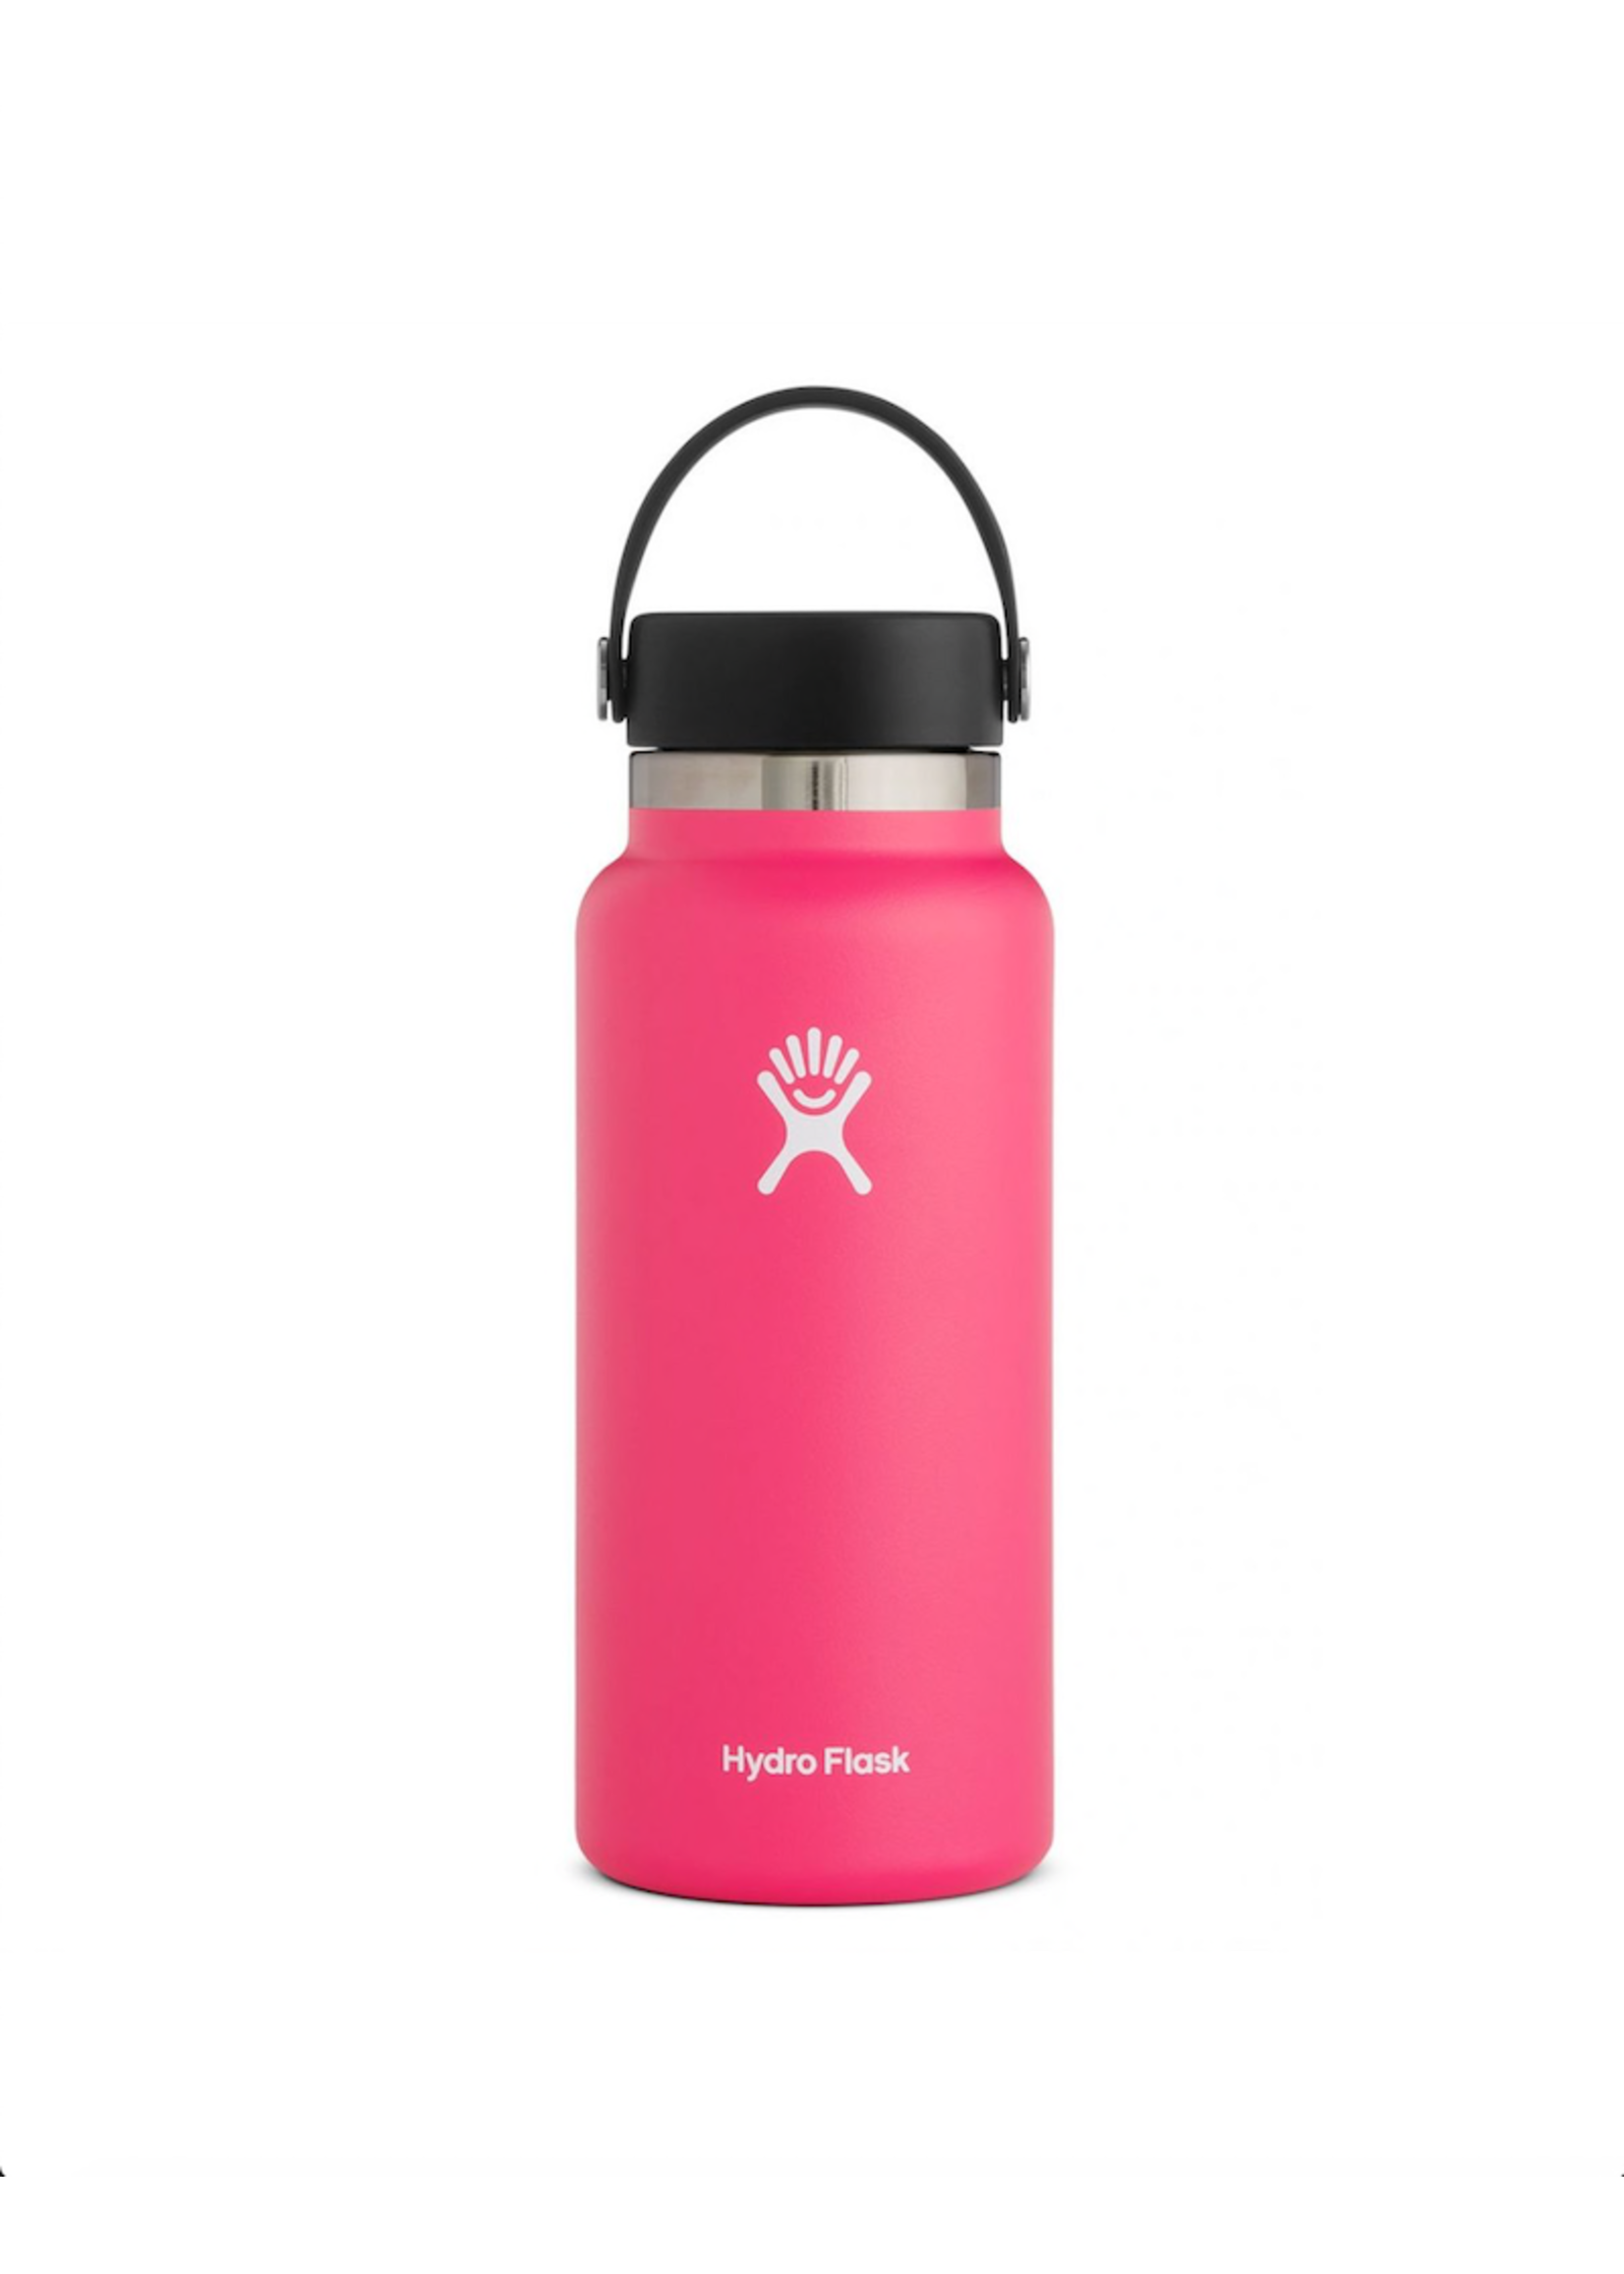 Hydro Flask Hydro Flask, 32 oz Wide Mouth 2.0  Flex Cap Insulated Stainless Steel Bottle in Watermelon